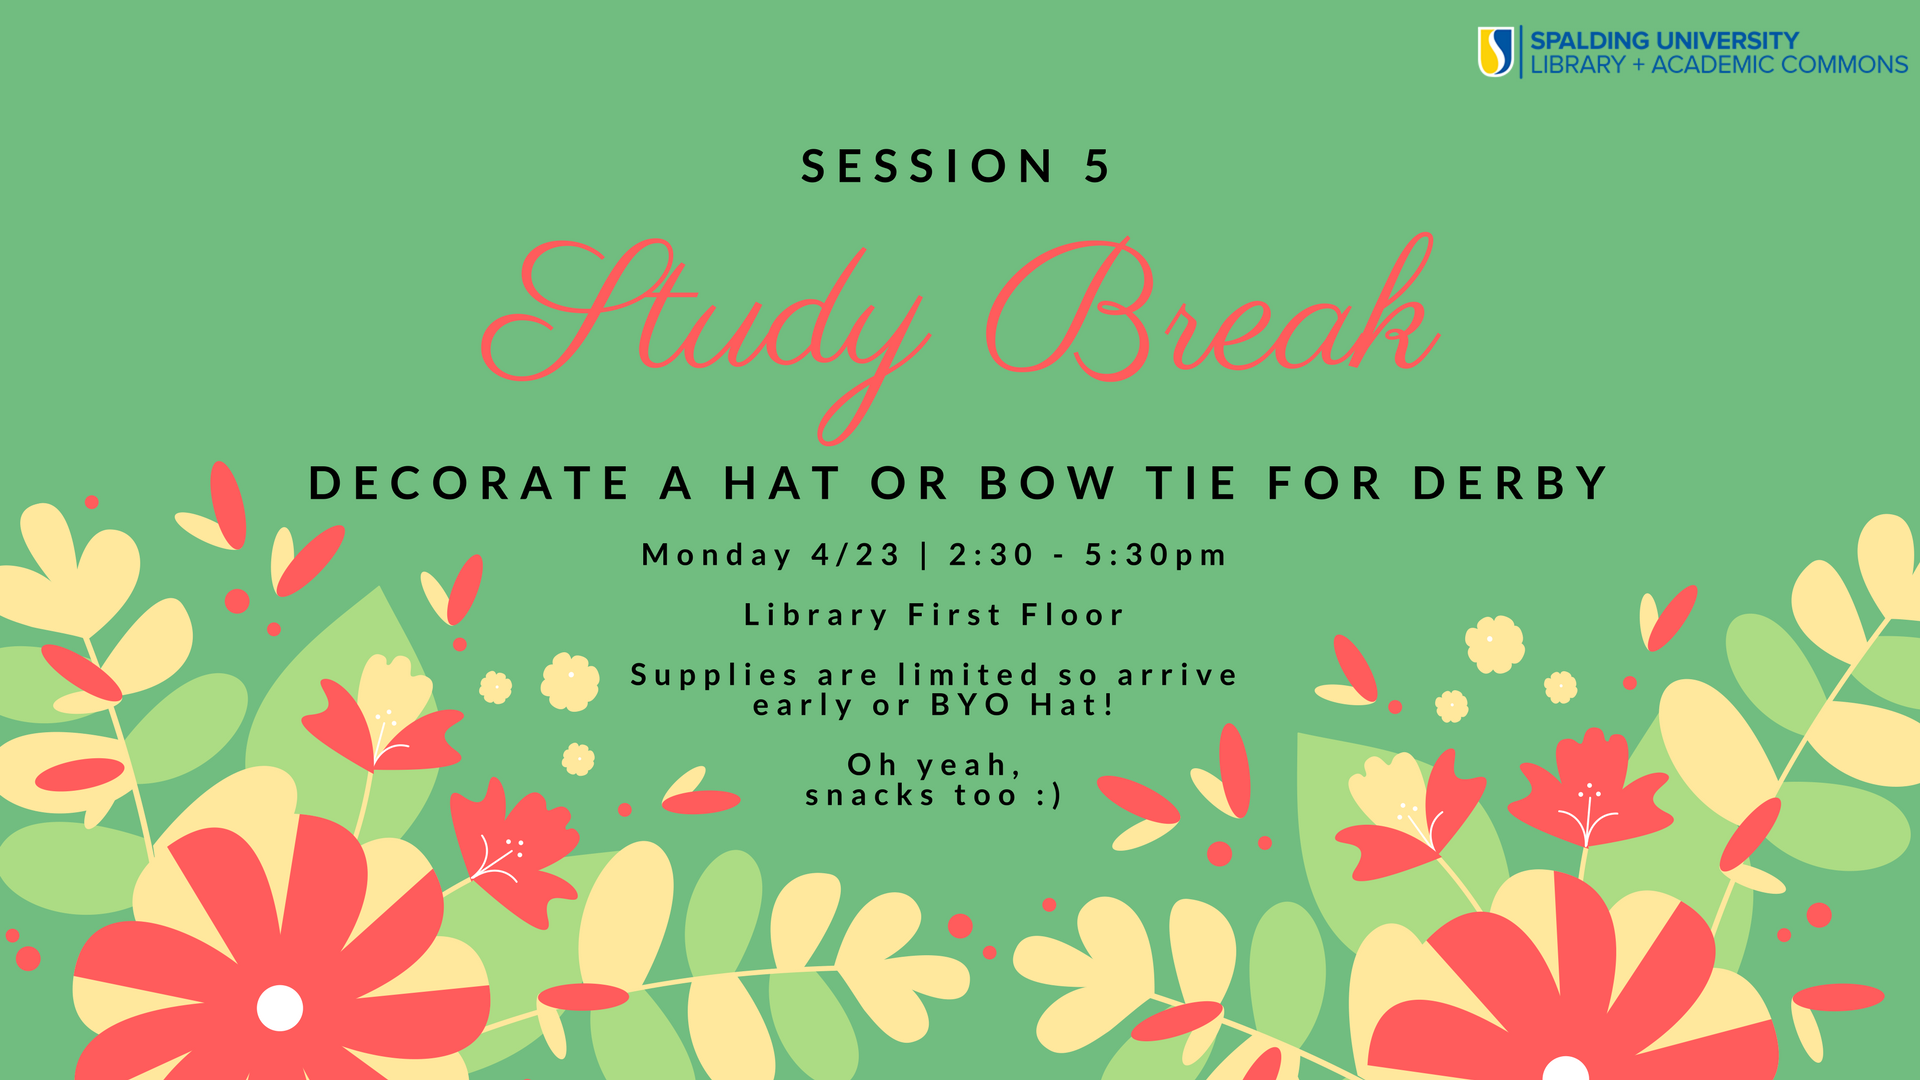 Study Break - Decorate Derby Hats and Bowties